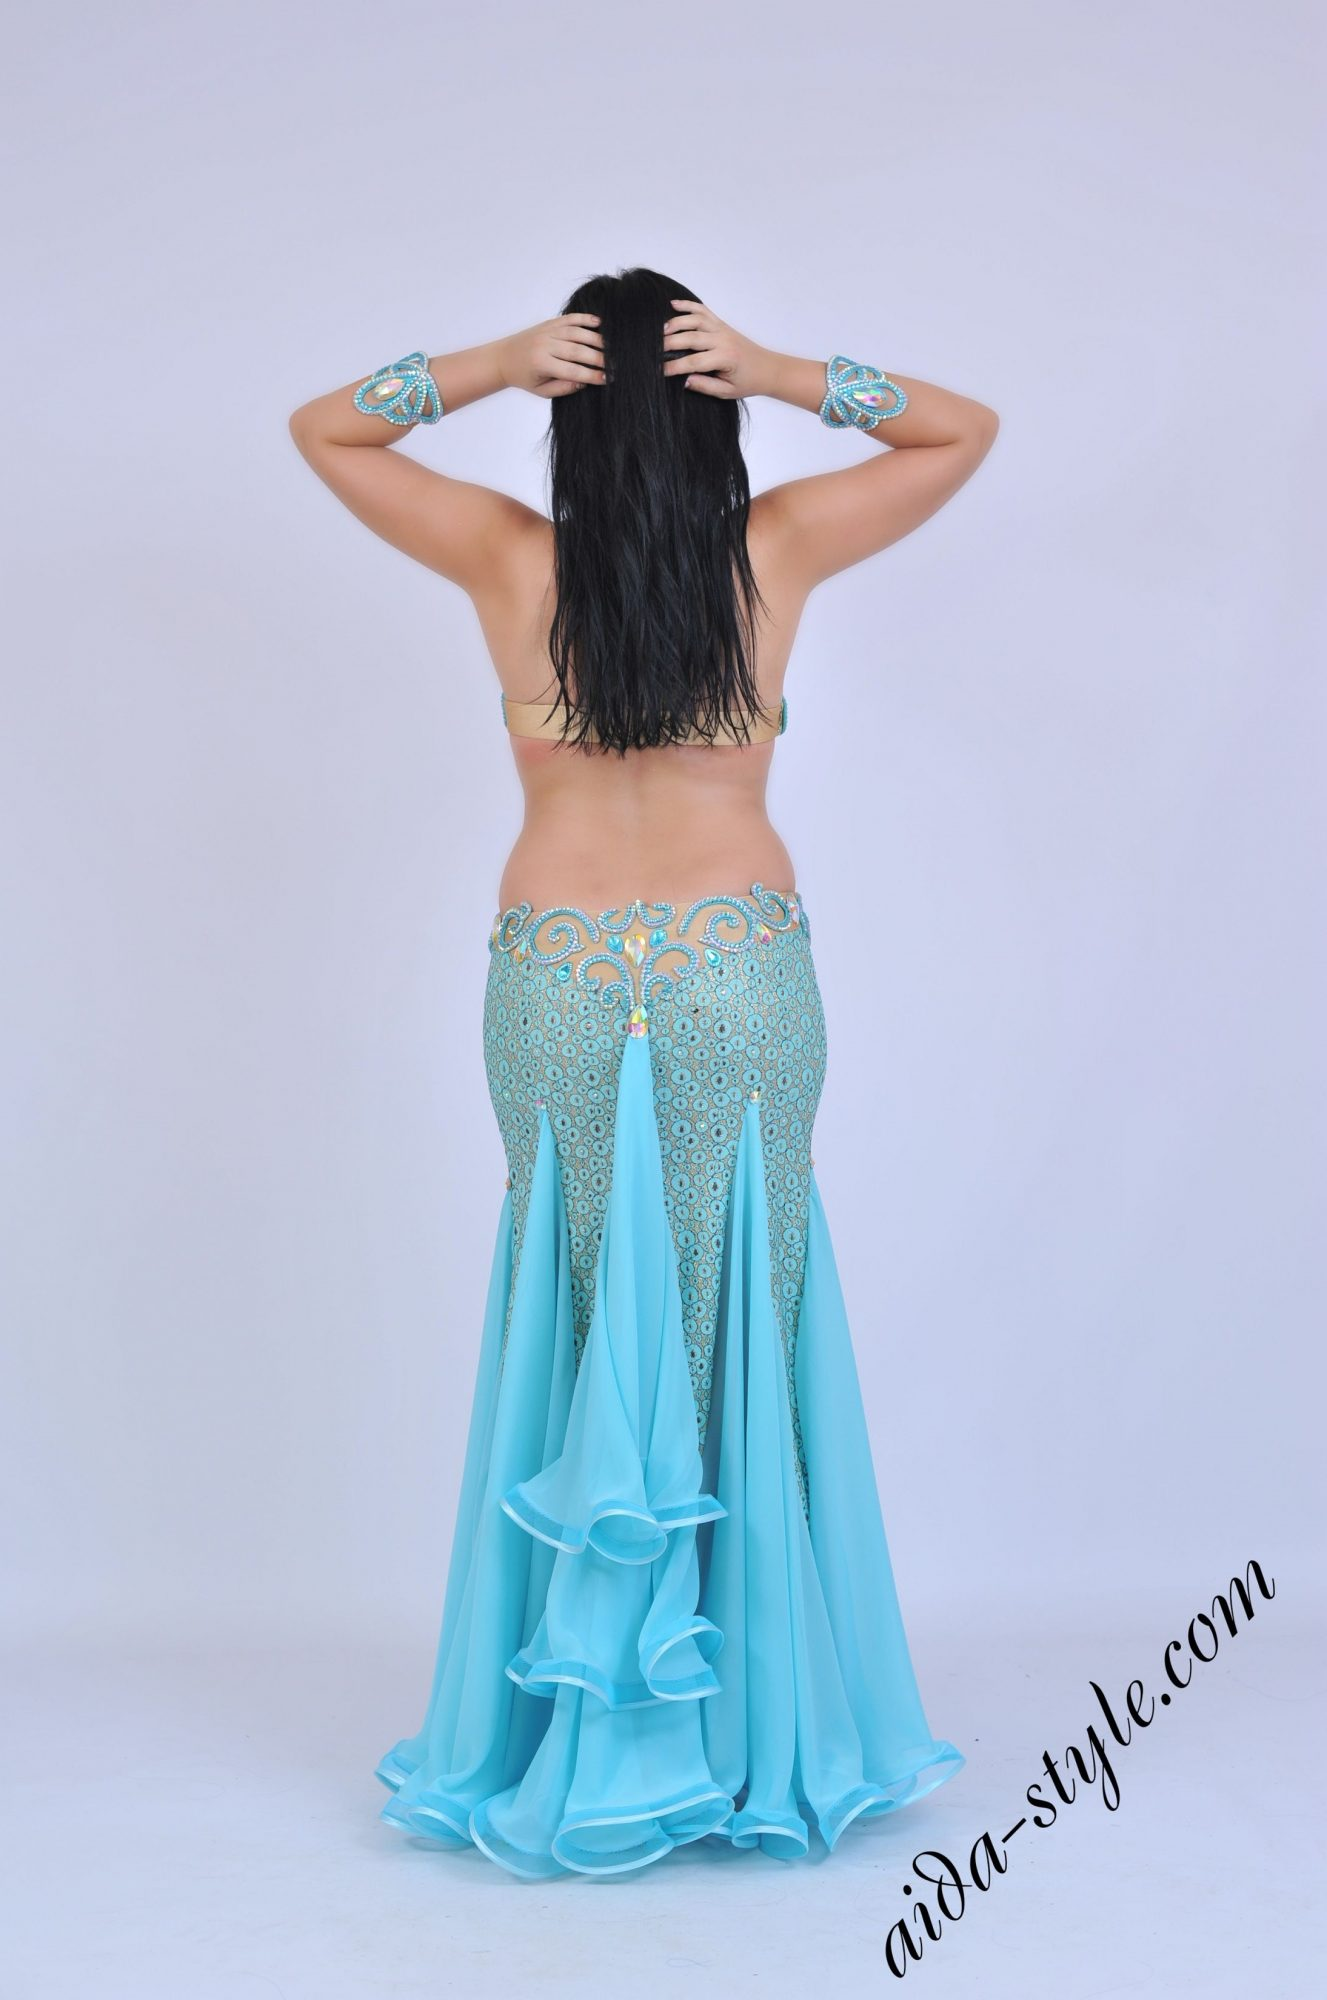 Light blue belly dancer costume with mermaid shape skirt